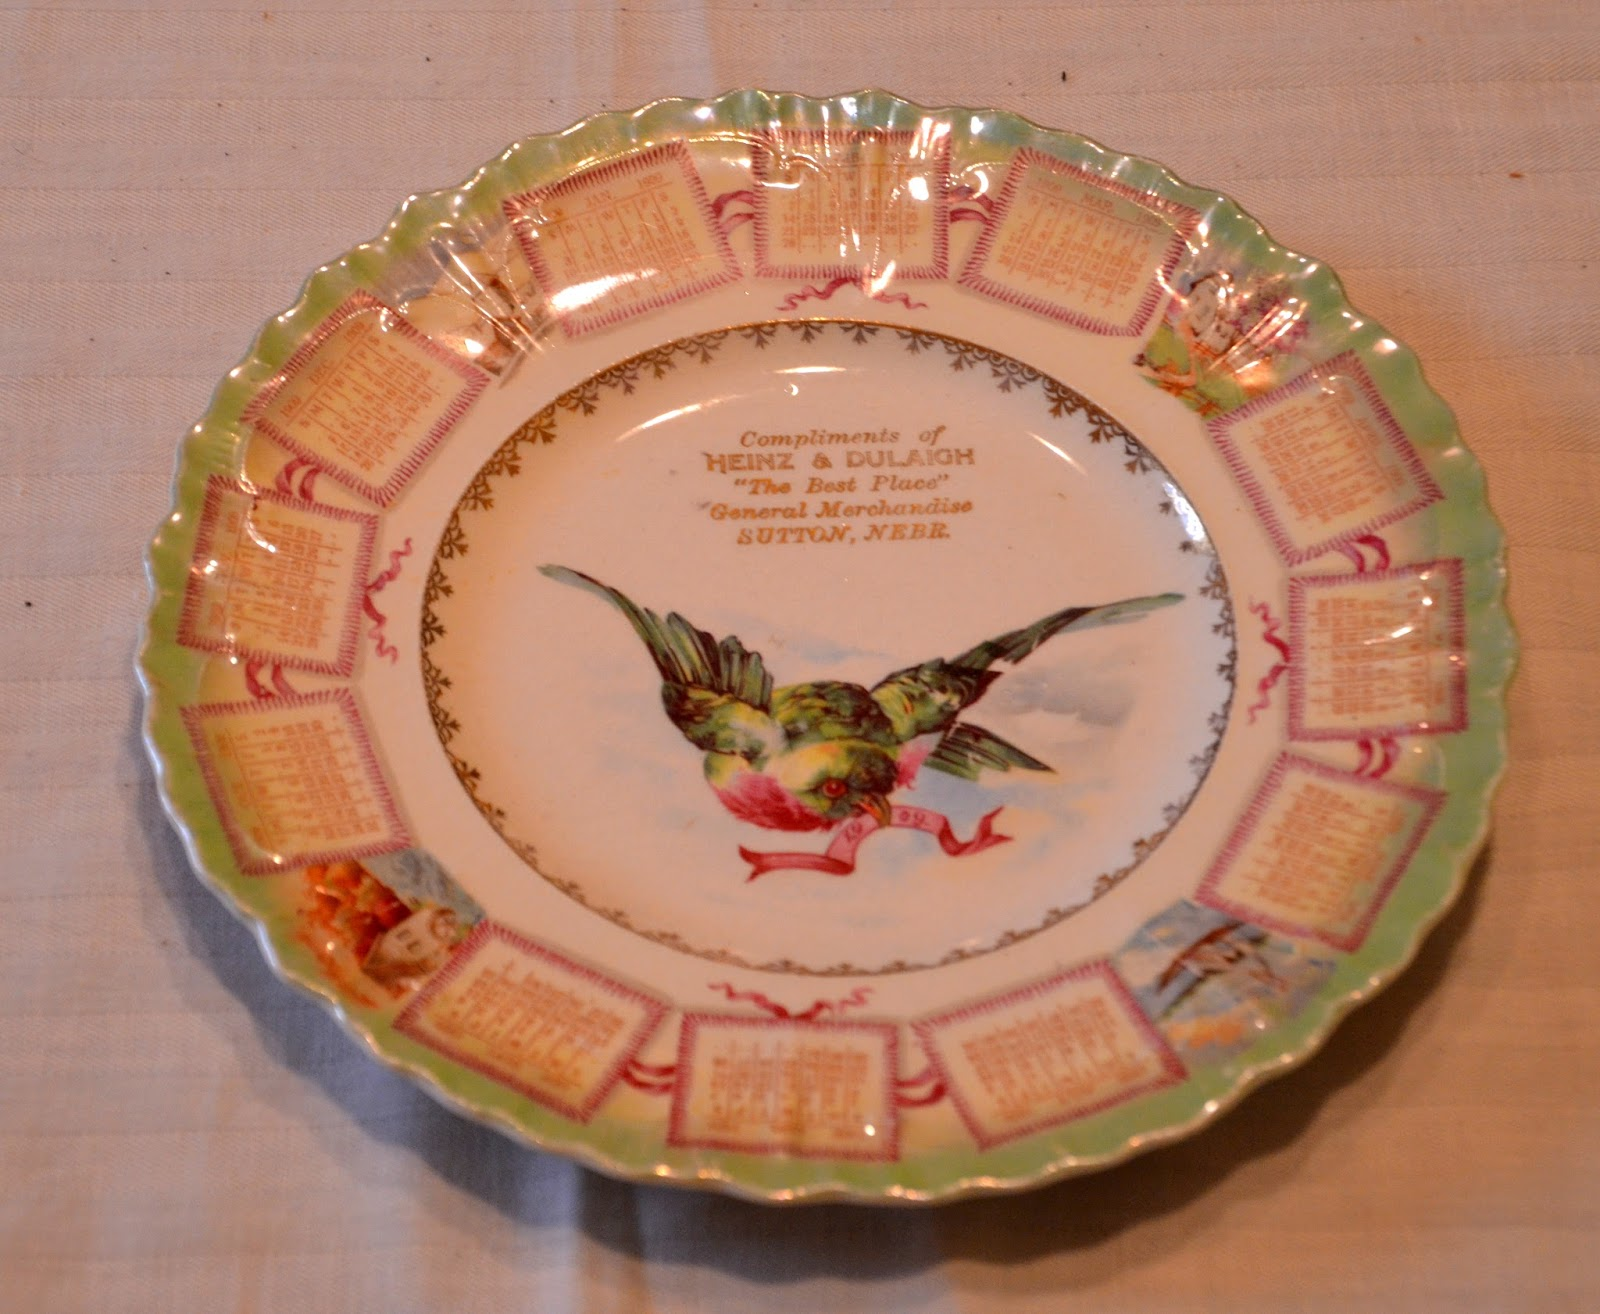 Among the hundreds of items in the Shirley Wach treasures recently donated to our museum were several decorative plates & Sutton Nebraska Museum: Decorative Plates - Wach Collection